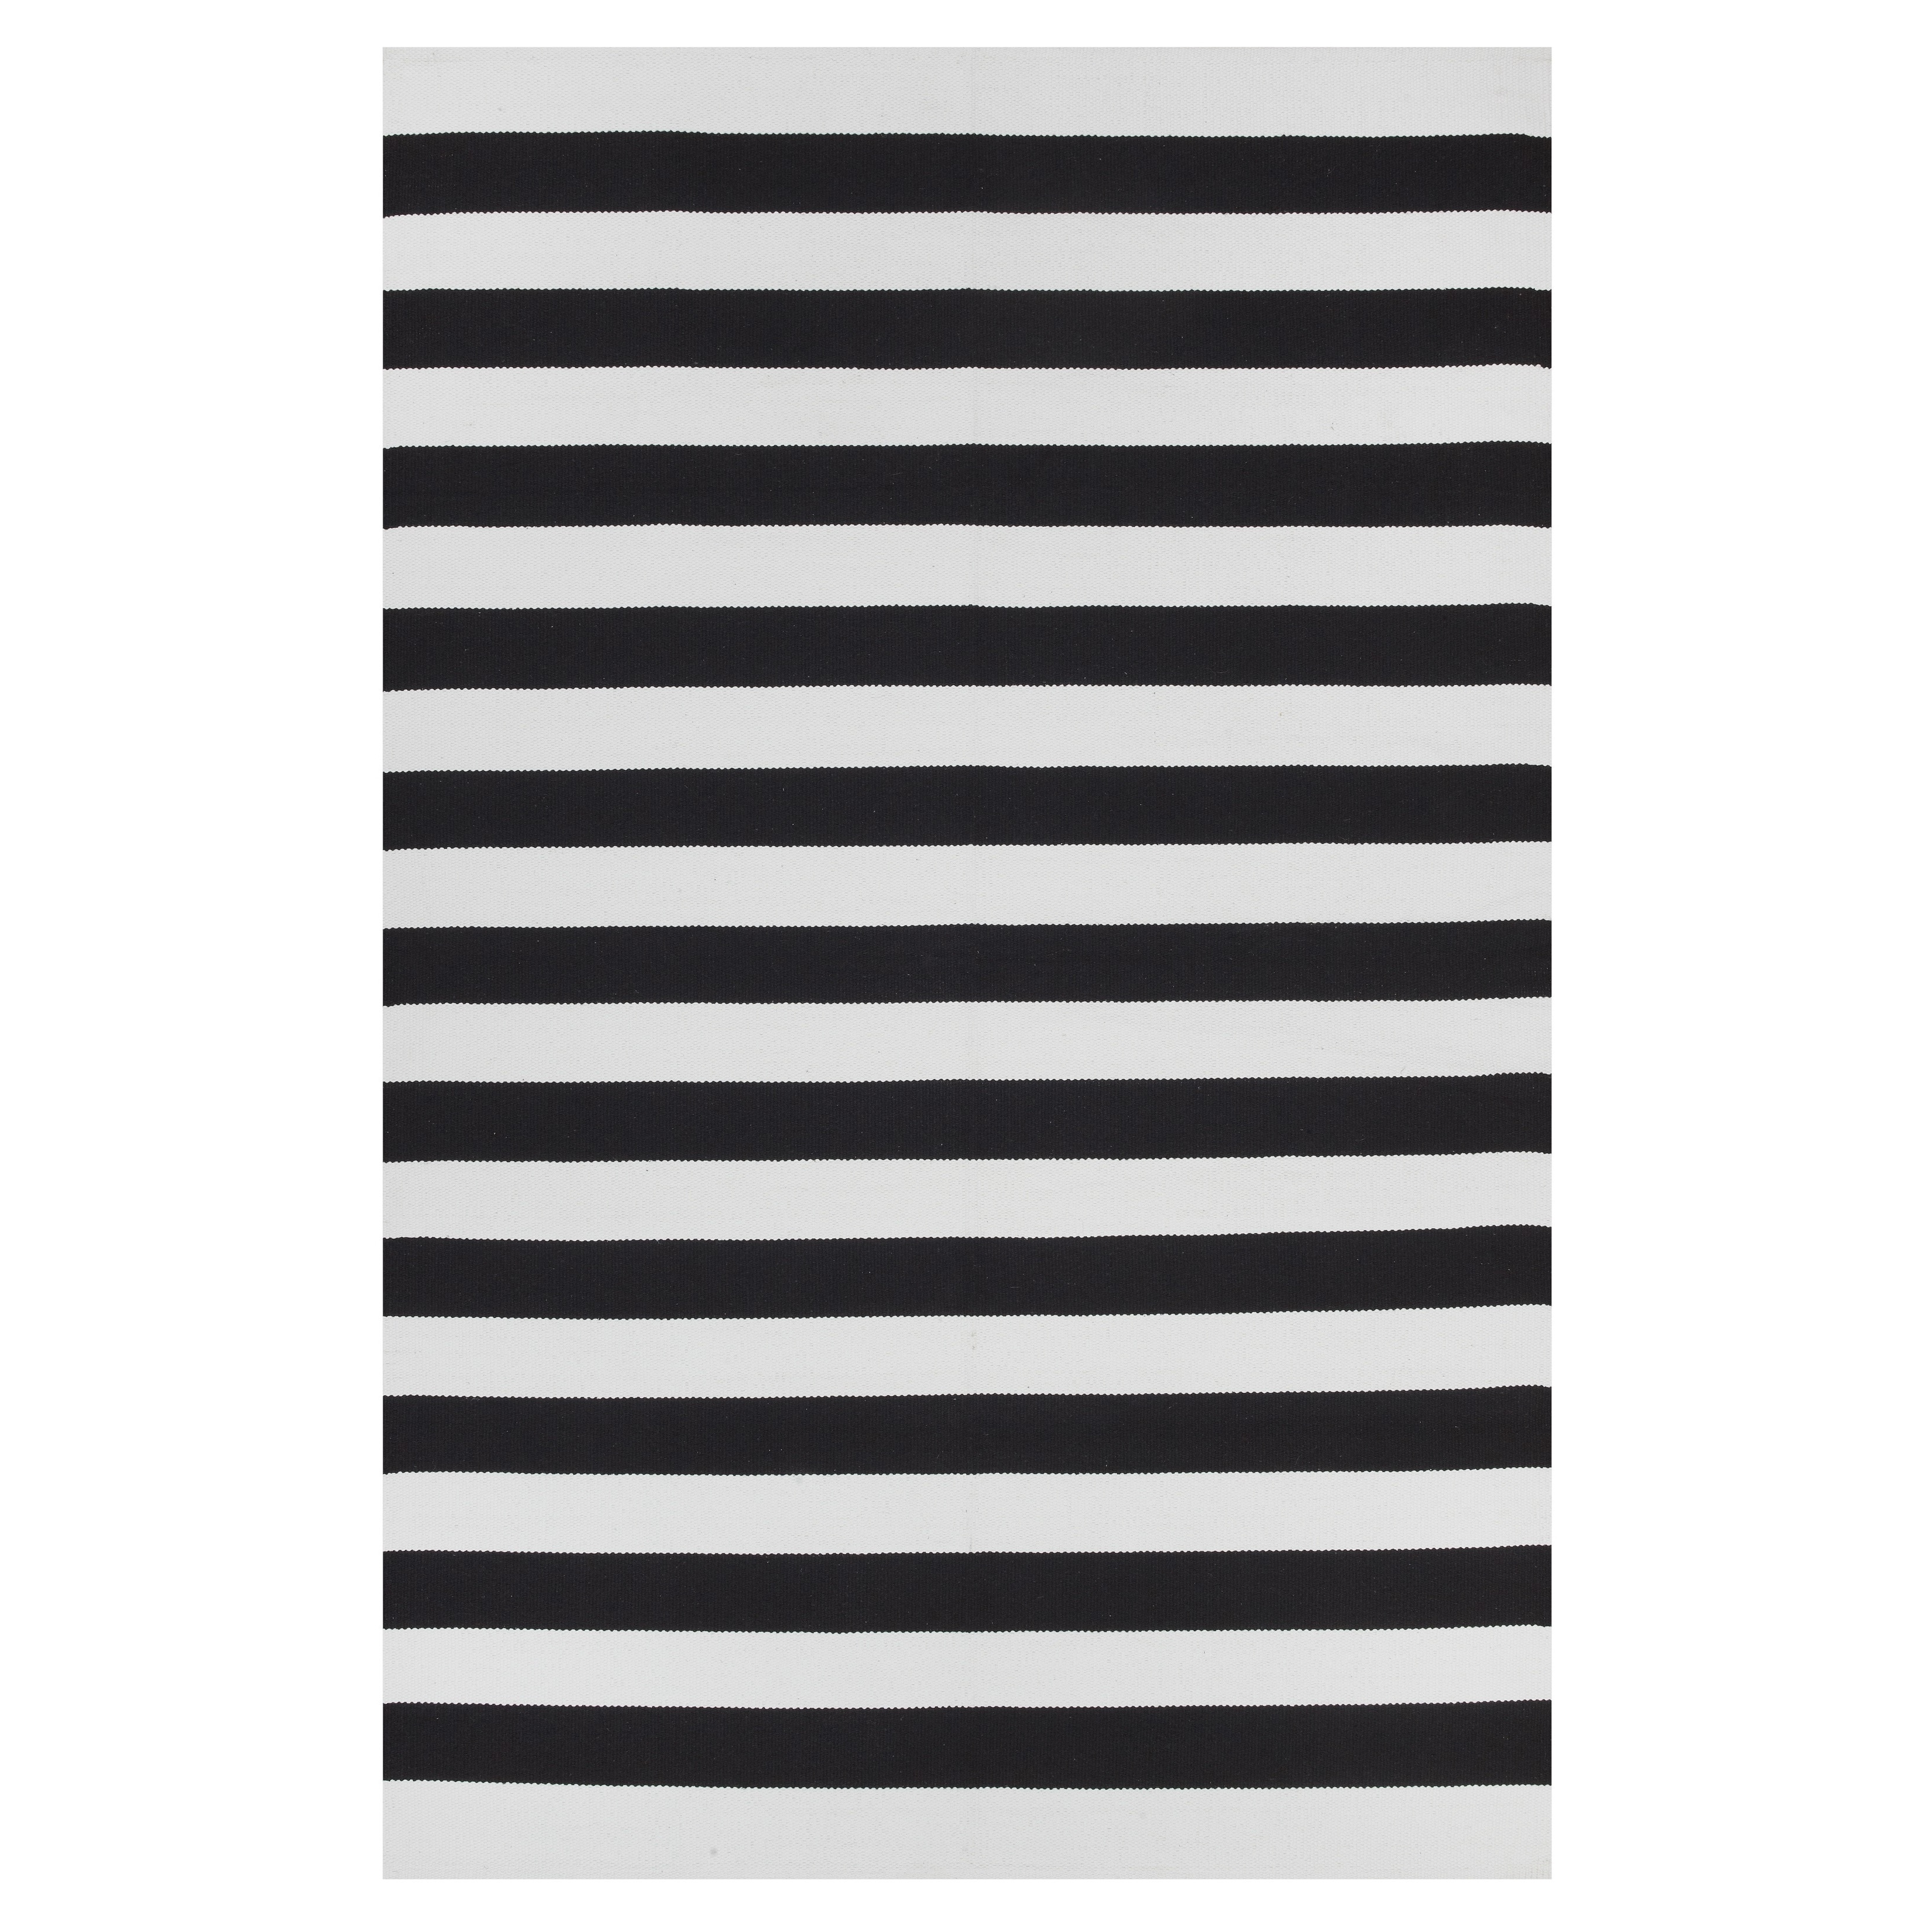 Shop handmade indo nantucket black bright white modern area rug india 4 x 6 on sale free shipping today overstock 8851762